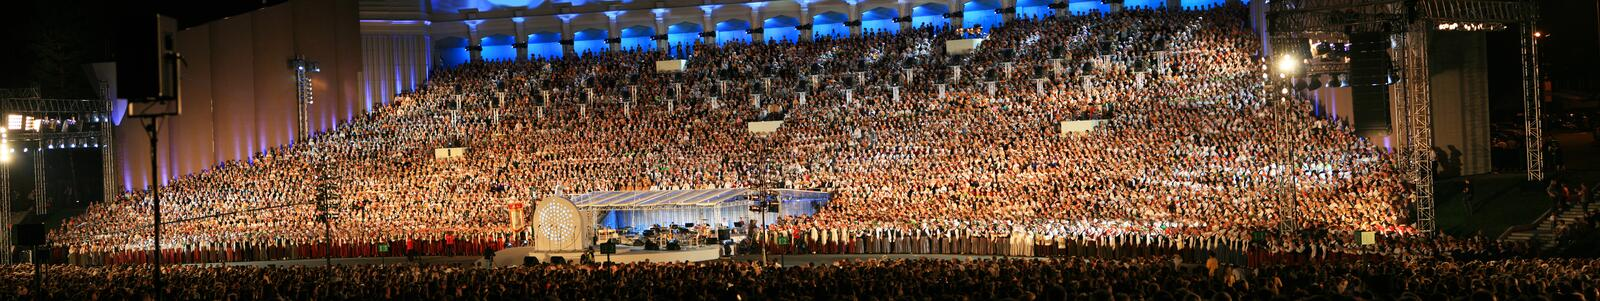 Amazing stage. Latvian Nationwide Song and Dance Celebration in Riga 2008 5.-12. July Latvia stock image